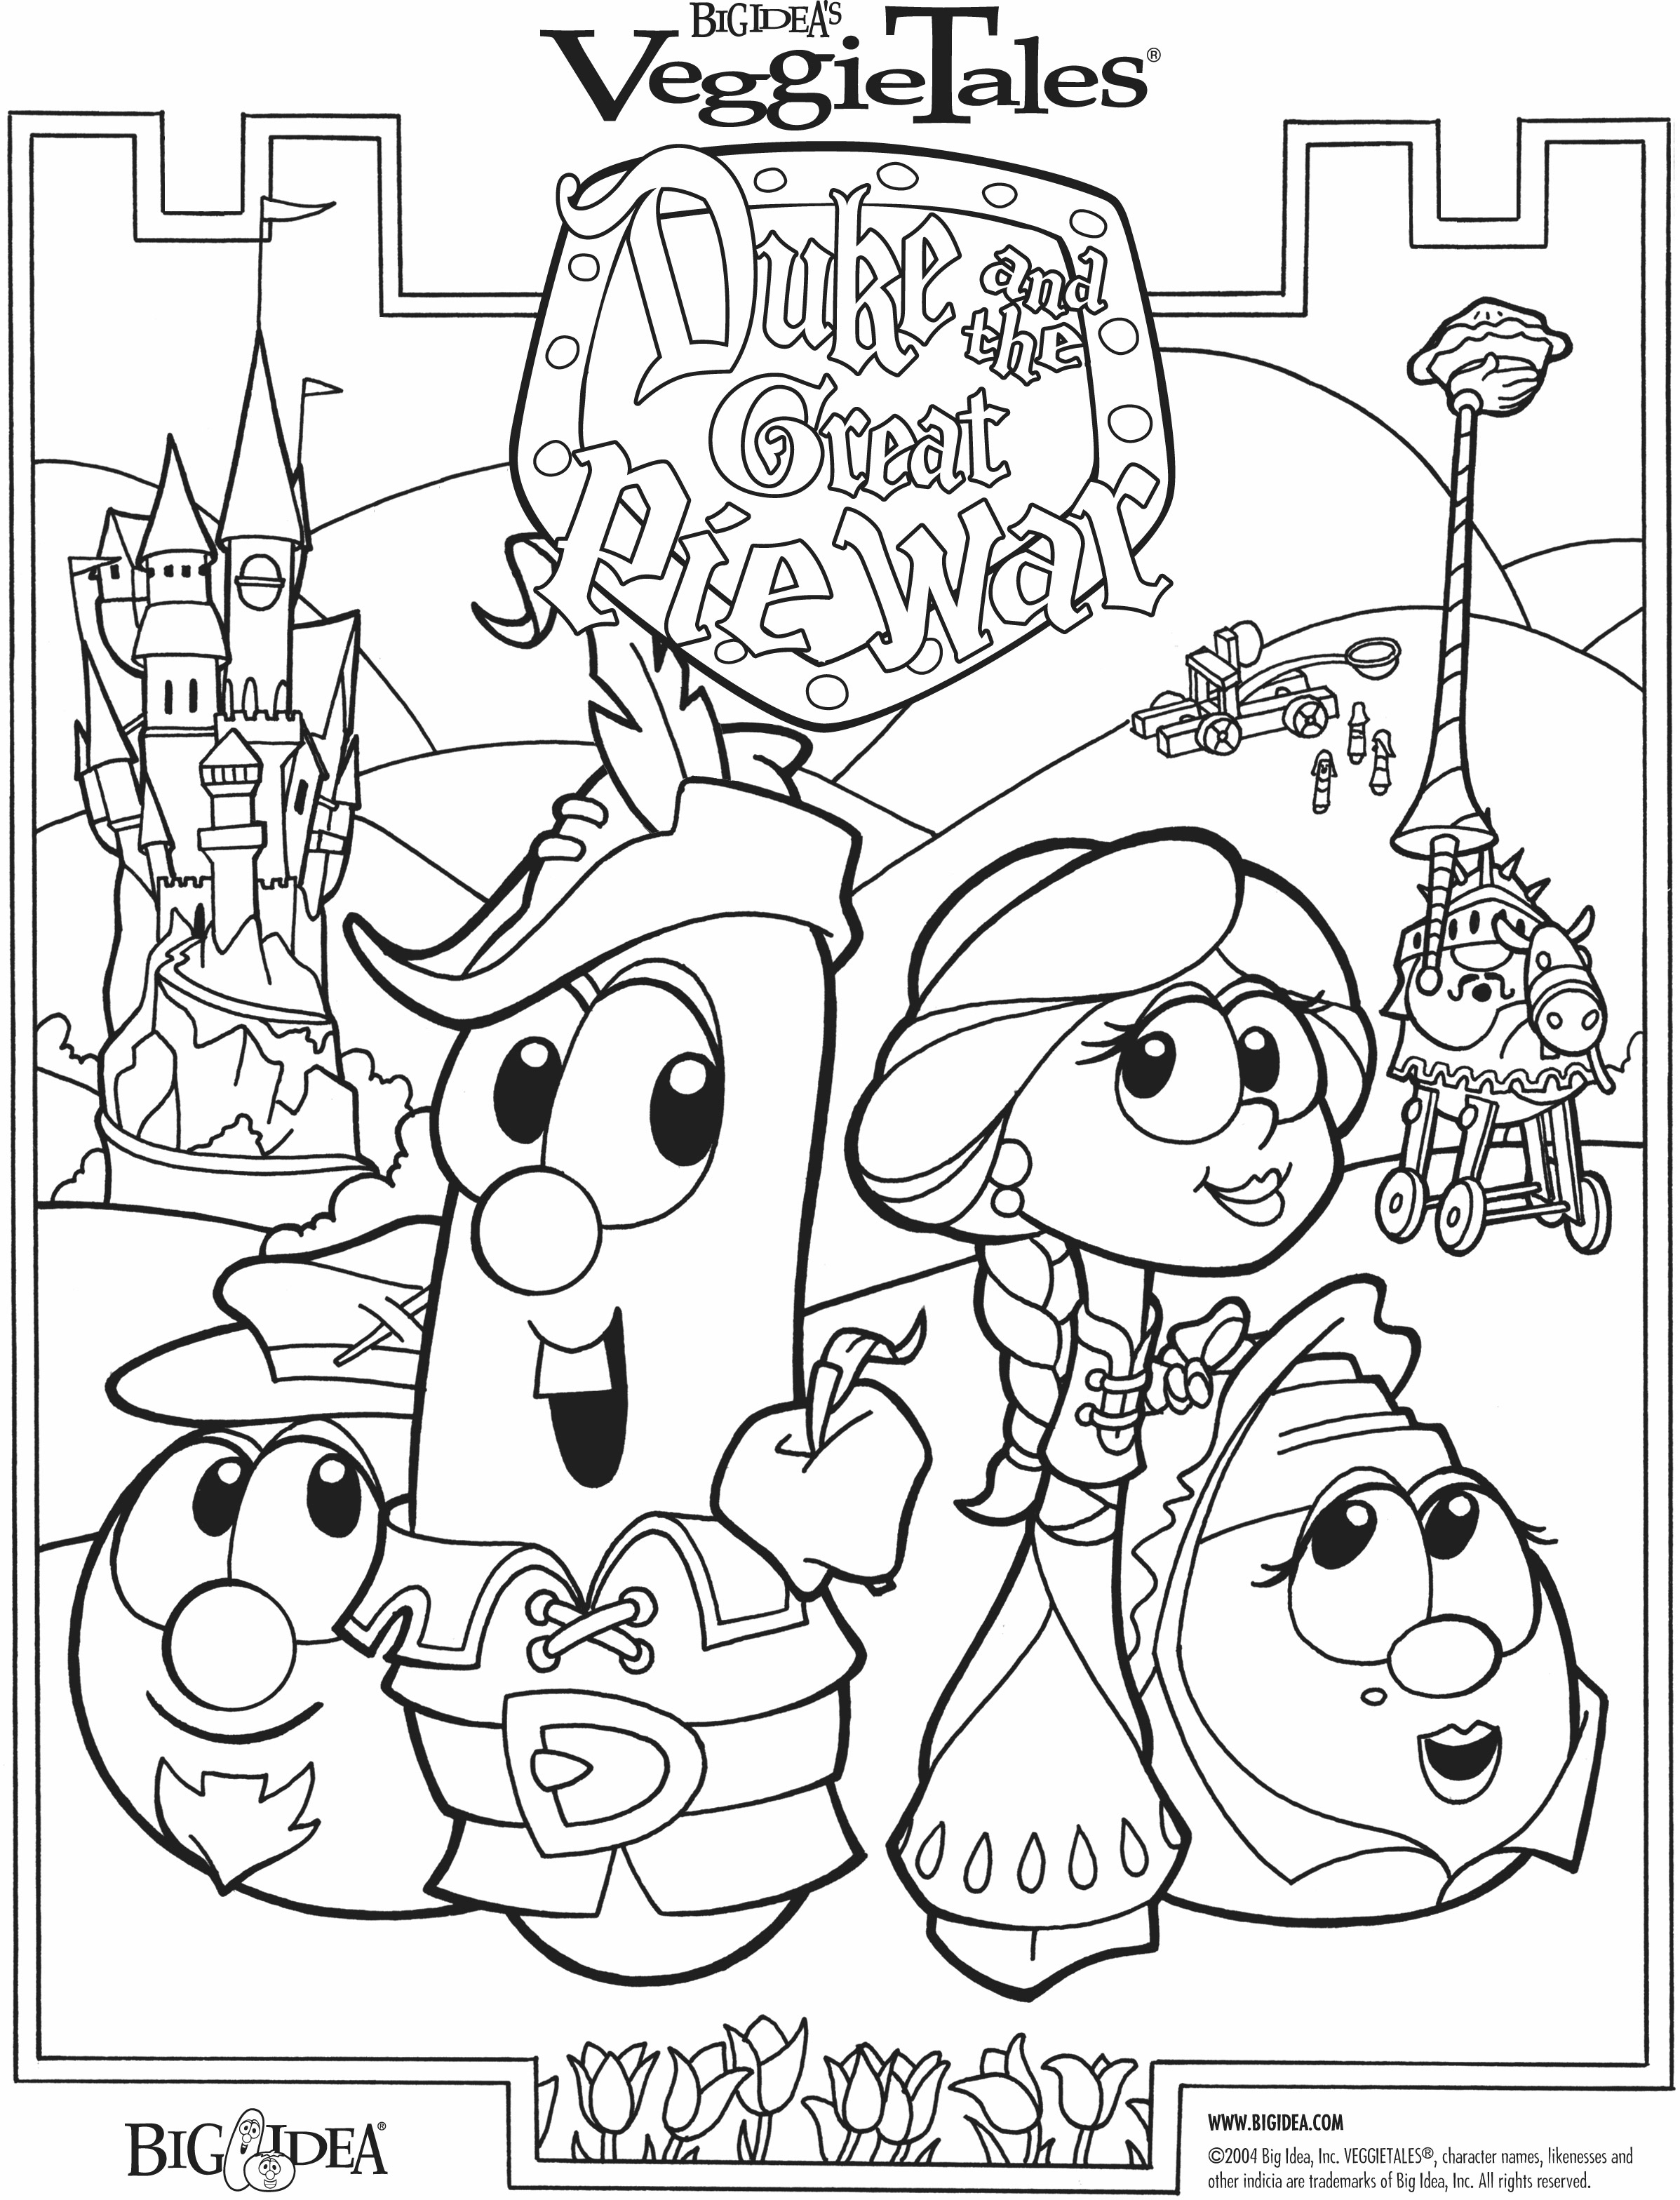 Joshua Fought The Battle Of Jericho Coloring Page Image 10 Of 50 Gibeonites Trick Joshua Coloring Page Free